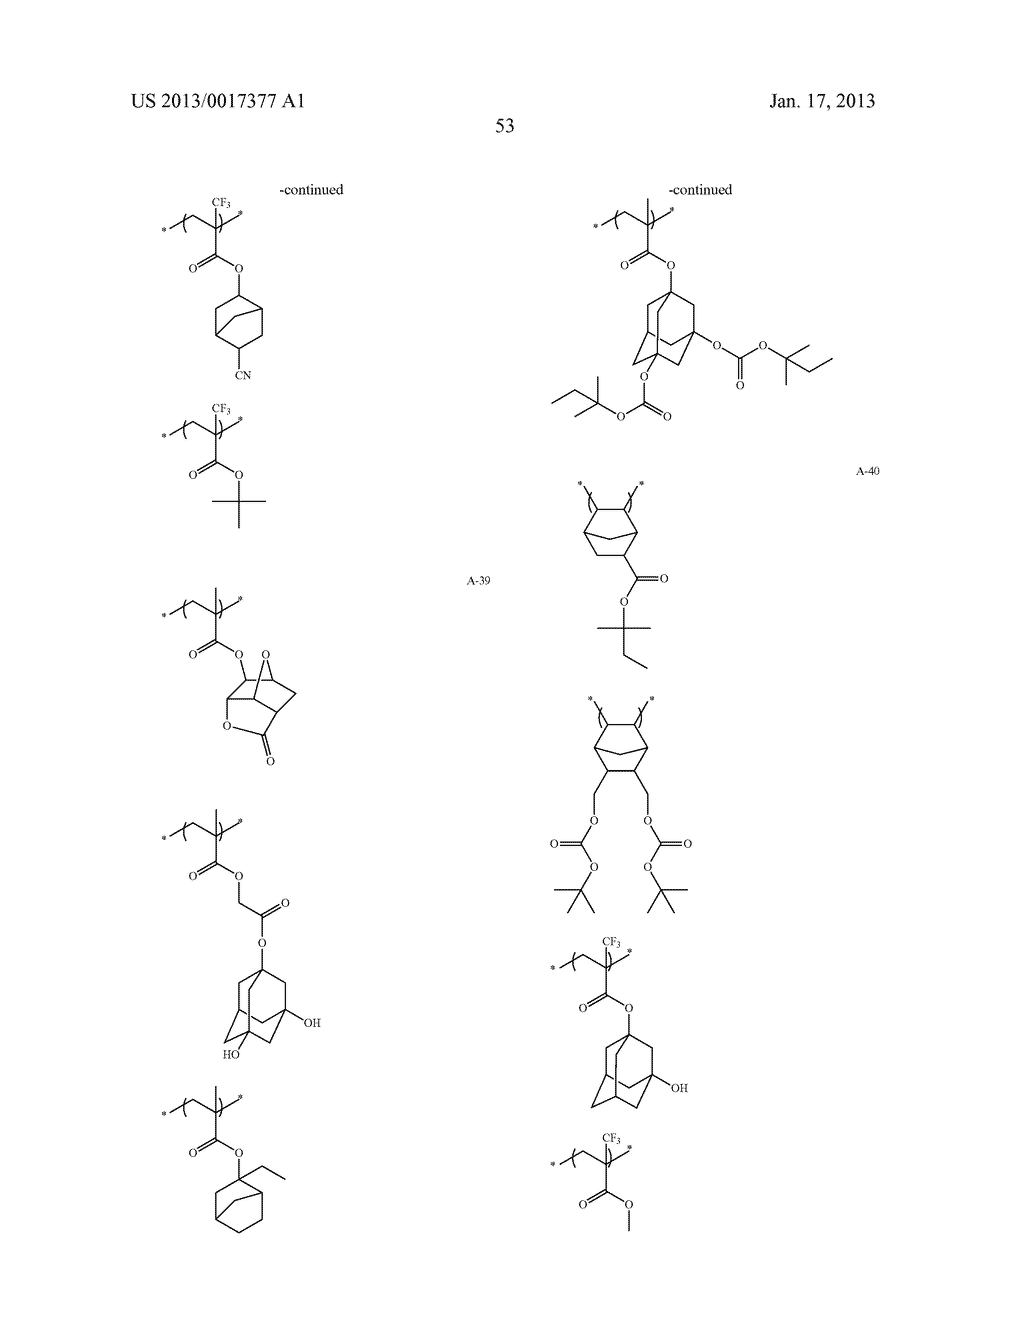 ACTINIC-RAY- OR RADIATION-SENSITIVE RESIN COMPOSITION AND METHOD OF     FORMING PATTERN USING THE SAMEAANM Kataoka; ShoheiAACI ShizuokaAACO JPAAGP Kataoka; Shohei Shizuoka JPAANM Iwato; KaoruAACI ShizuokaAACO JPAAGP Iwato; Kaoru Shizuoka JPAANM Kamimura; SouAACI ShizuokaAACO JPAAGP Kamimura; Sou Shizuoka JPAANM Tsuchihashi; ToruAACI ShizuokaAACO JPAAGP Tsuchihashi; Toru Shizuoka JPAANM Enomoto; YuichiroAACI ShizuokaAACO JPAAGP Enomoto; Yuichiro Shizuoka JPAANM Fujii; KanaAACI ShizuokaAACO JPAAGP Fujii; Kana Shizuoka JPAANM Mizutani; KazuyoshiAACI ShizuokaAACO JPAAGP Mizutani; Kazuyoshi Shizuoka JPAANM Tarutani; ShinjiAACI ShizuokaAACO JPAAGP Tarutani; Shinji Shizuoka JPAANM Kato; KeitaAACI ShizuokaAACO JPAAGP Kato; Keita Shizuoka JP - diagram, schematic, and image 54